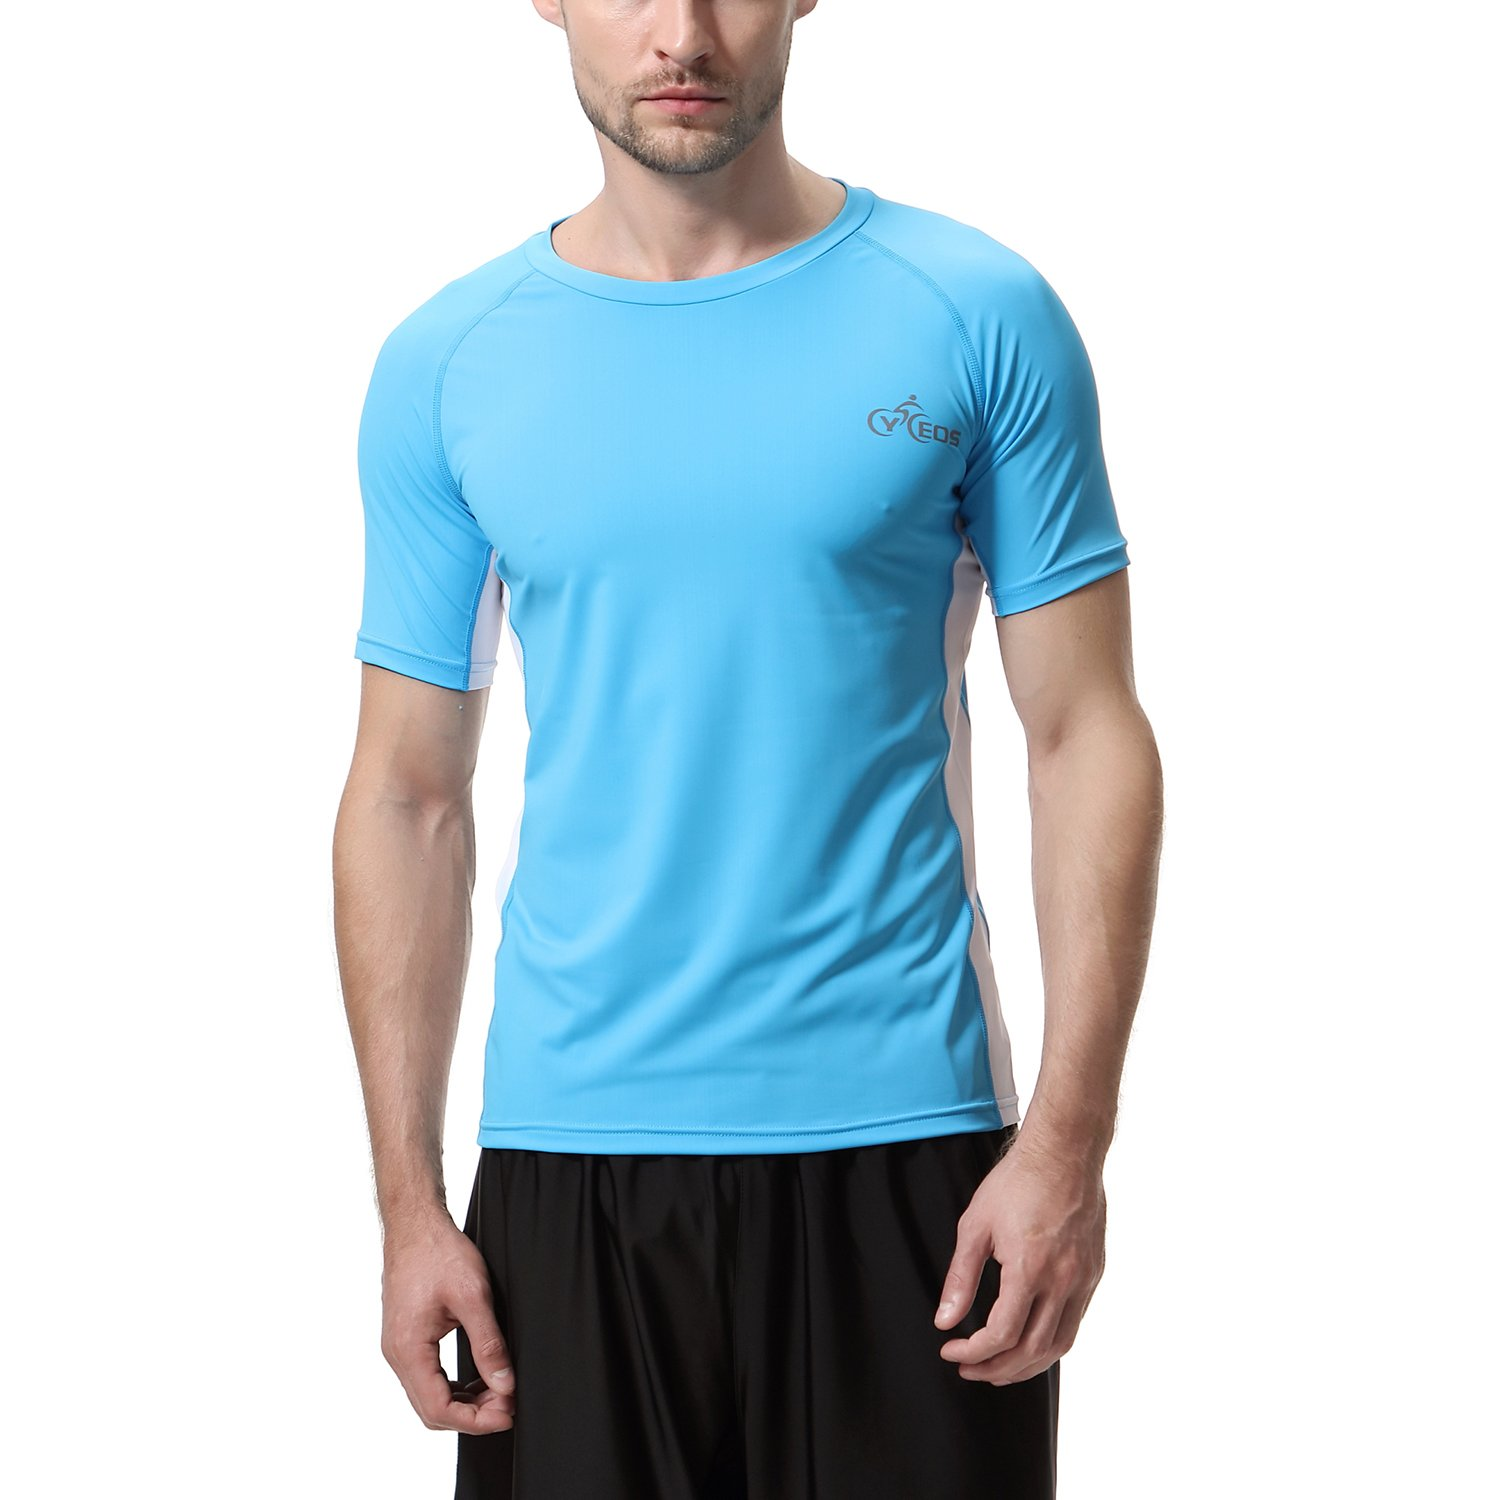 db5fc409f1 Amazon.com: CYCEOS Men's Short Sleeve Rash Guard Shirt - UPF 50+ Rashguard  Swim Shirts Men Swimwear Surf Athletic Tops: Clothing